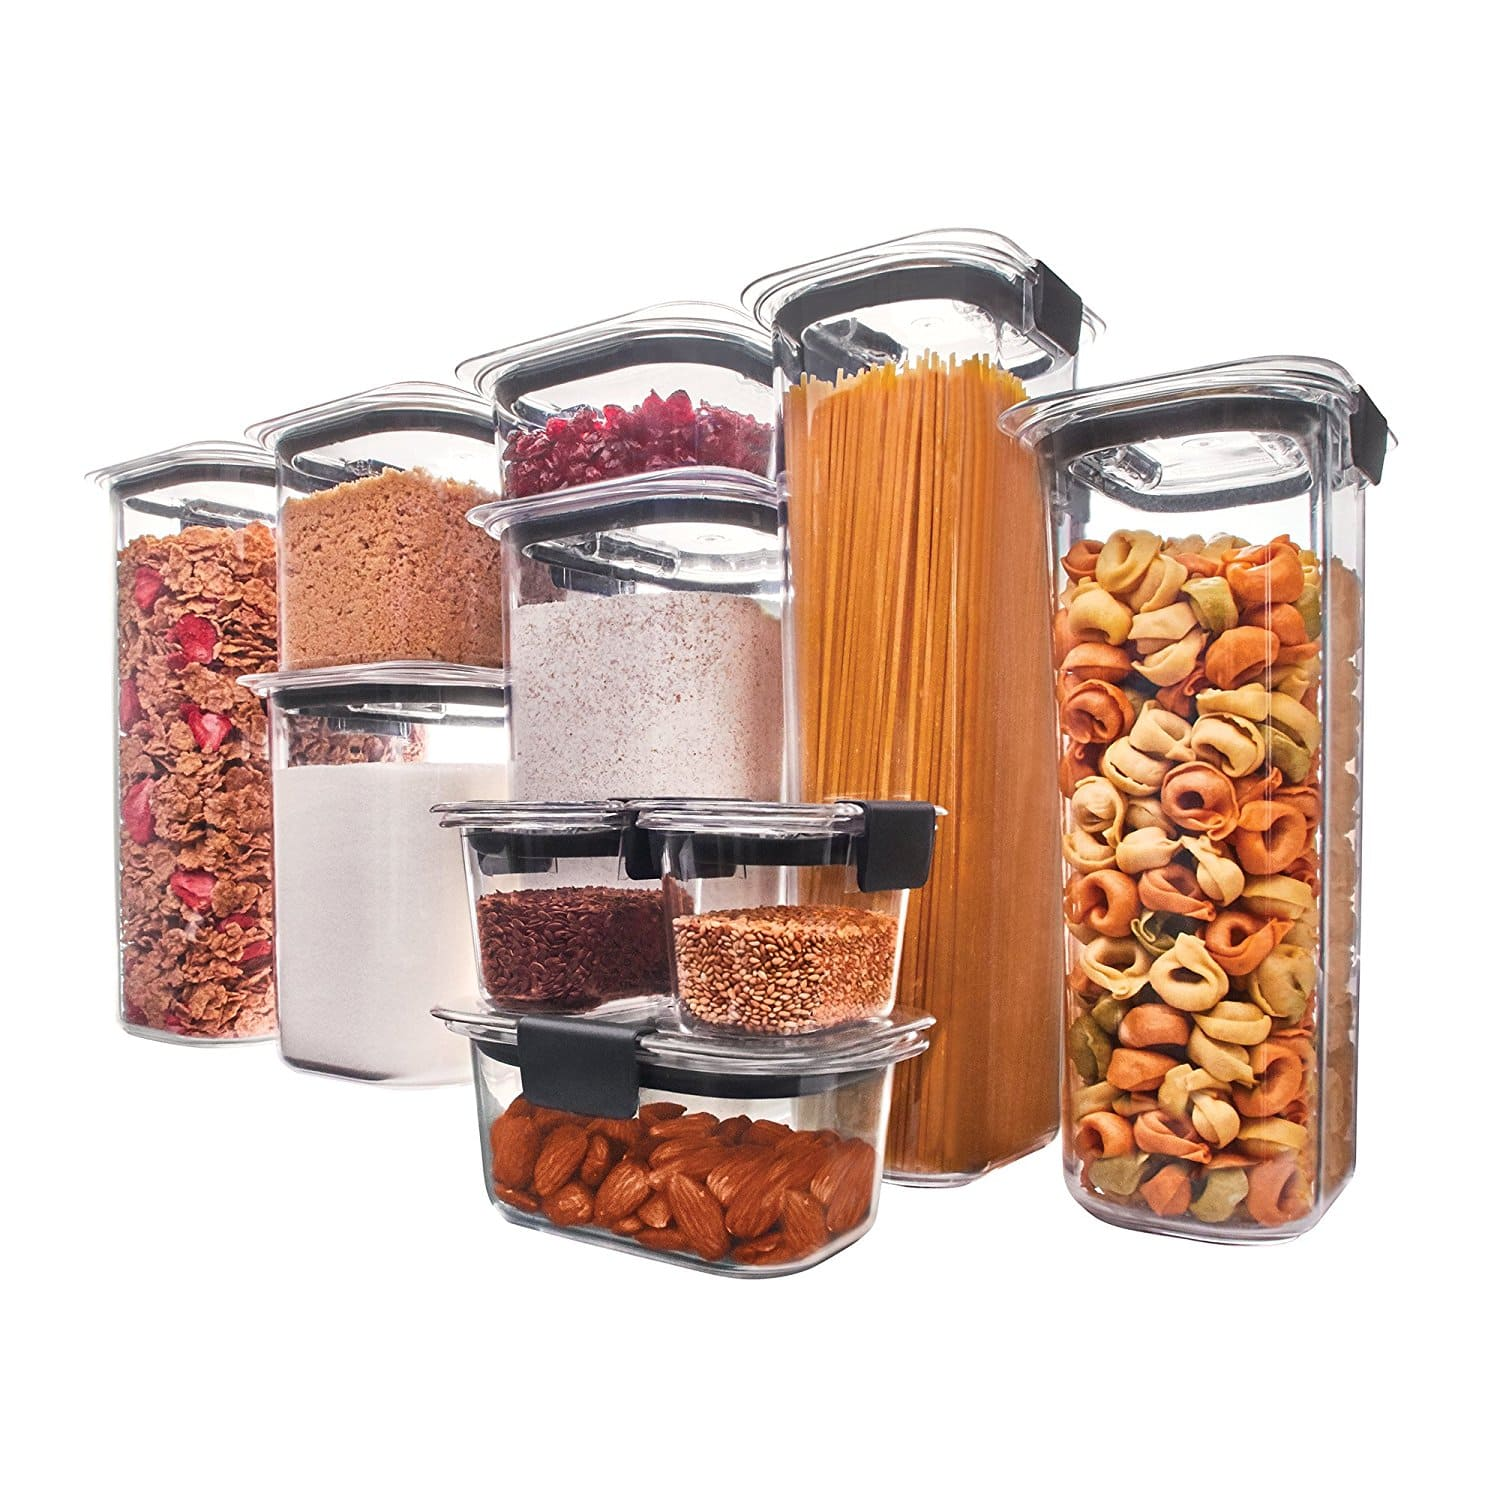 10 Piece Rubbermaid Brilliance Pantry Airtight Food Storage Containers W Lids